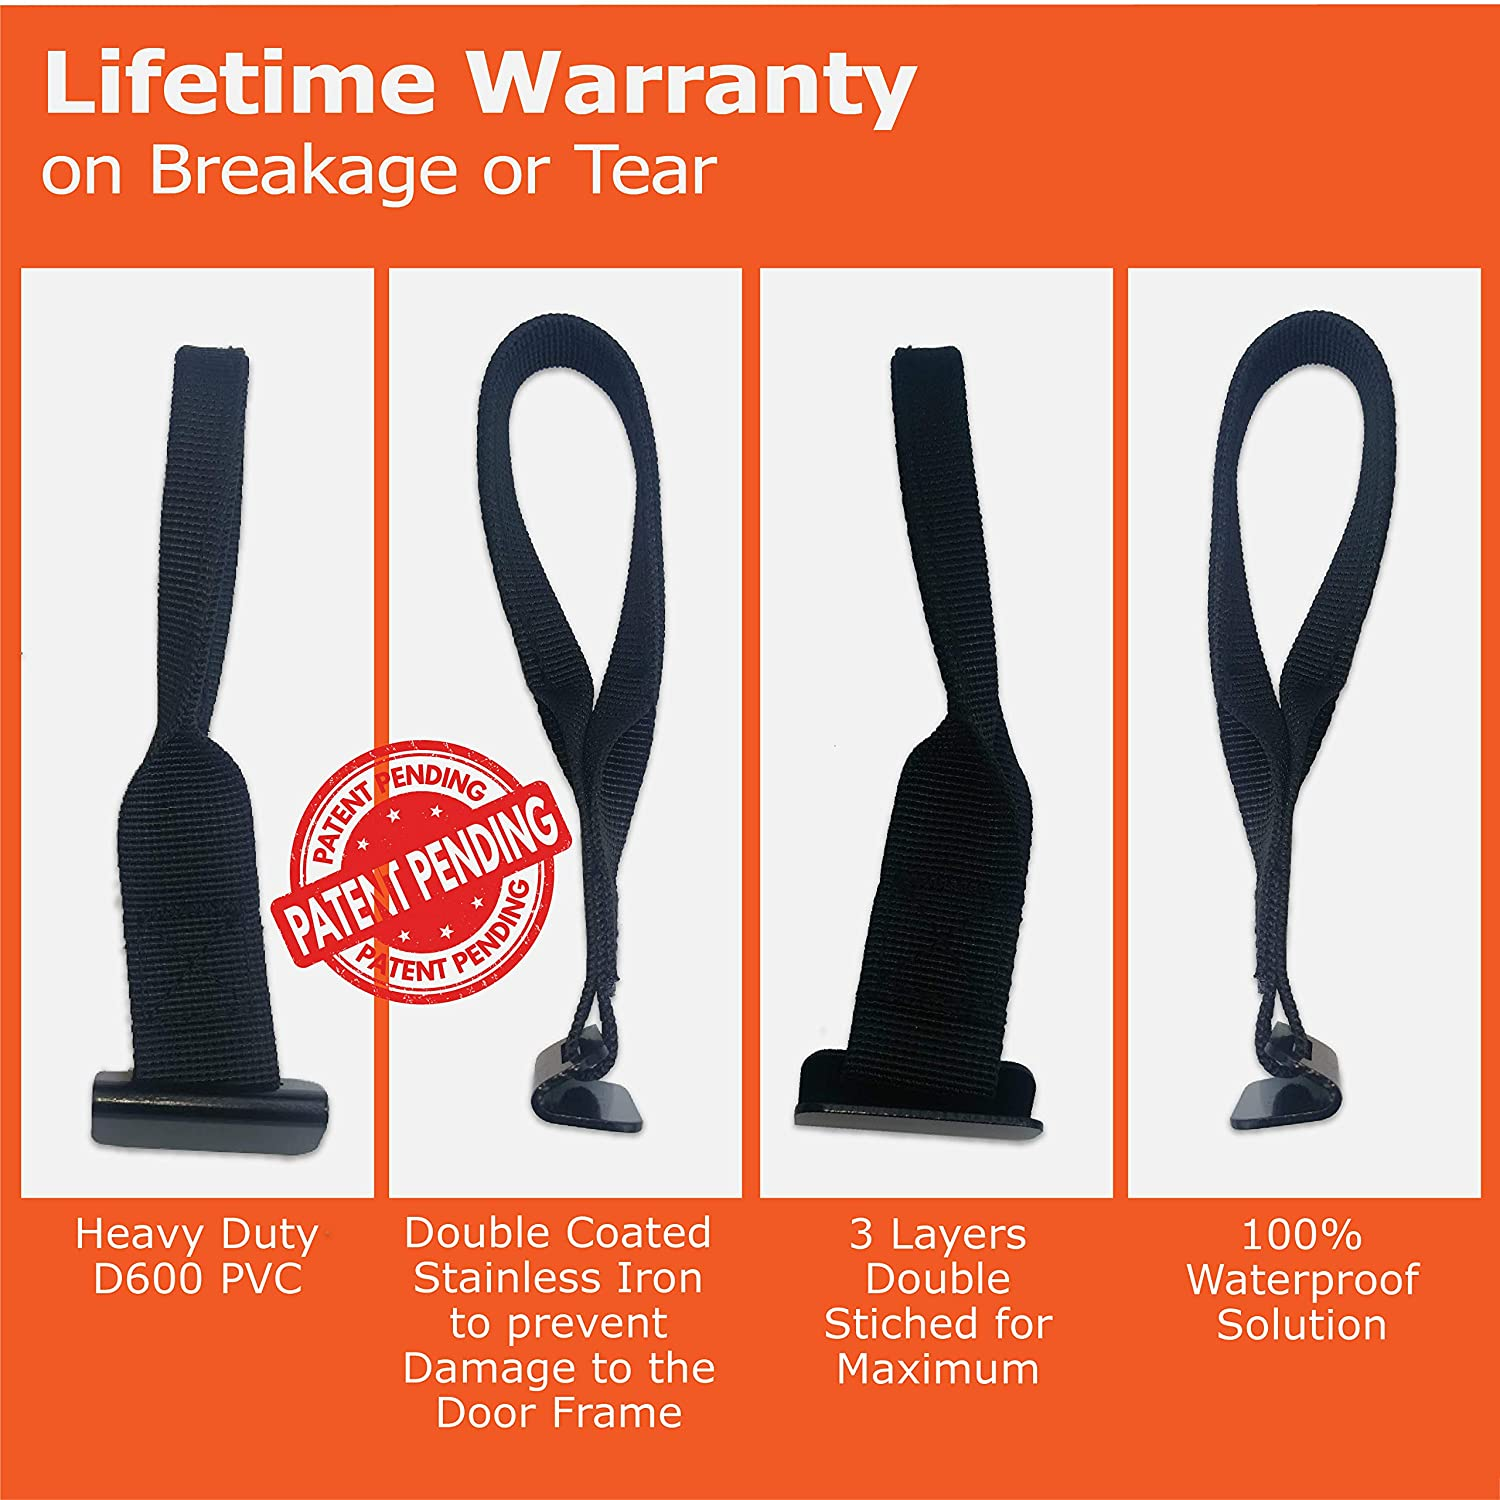 Roof Top Cargo Carrier Hooks for Securing Car Top Luggage RoofPax NO More Straps Inside CAR 100/% Waterproof Attached to Car Door Frame for: Car Roof Bags//Kayak//SAP//Ski.! Strong